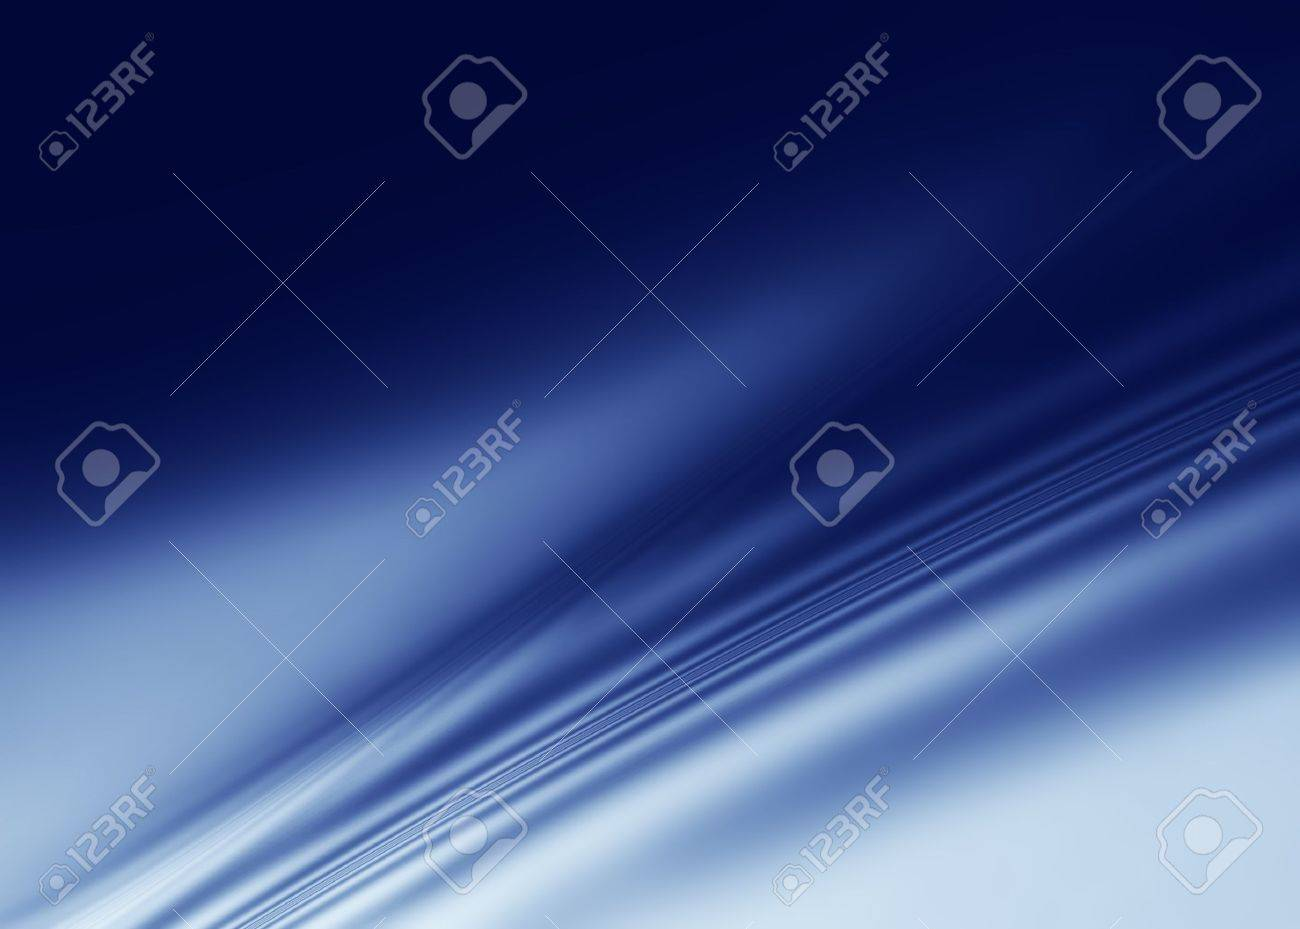 Blue abstract background Stock Photo - 16536144